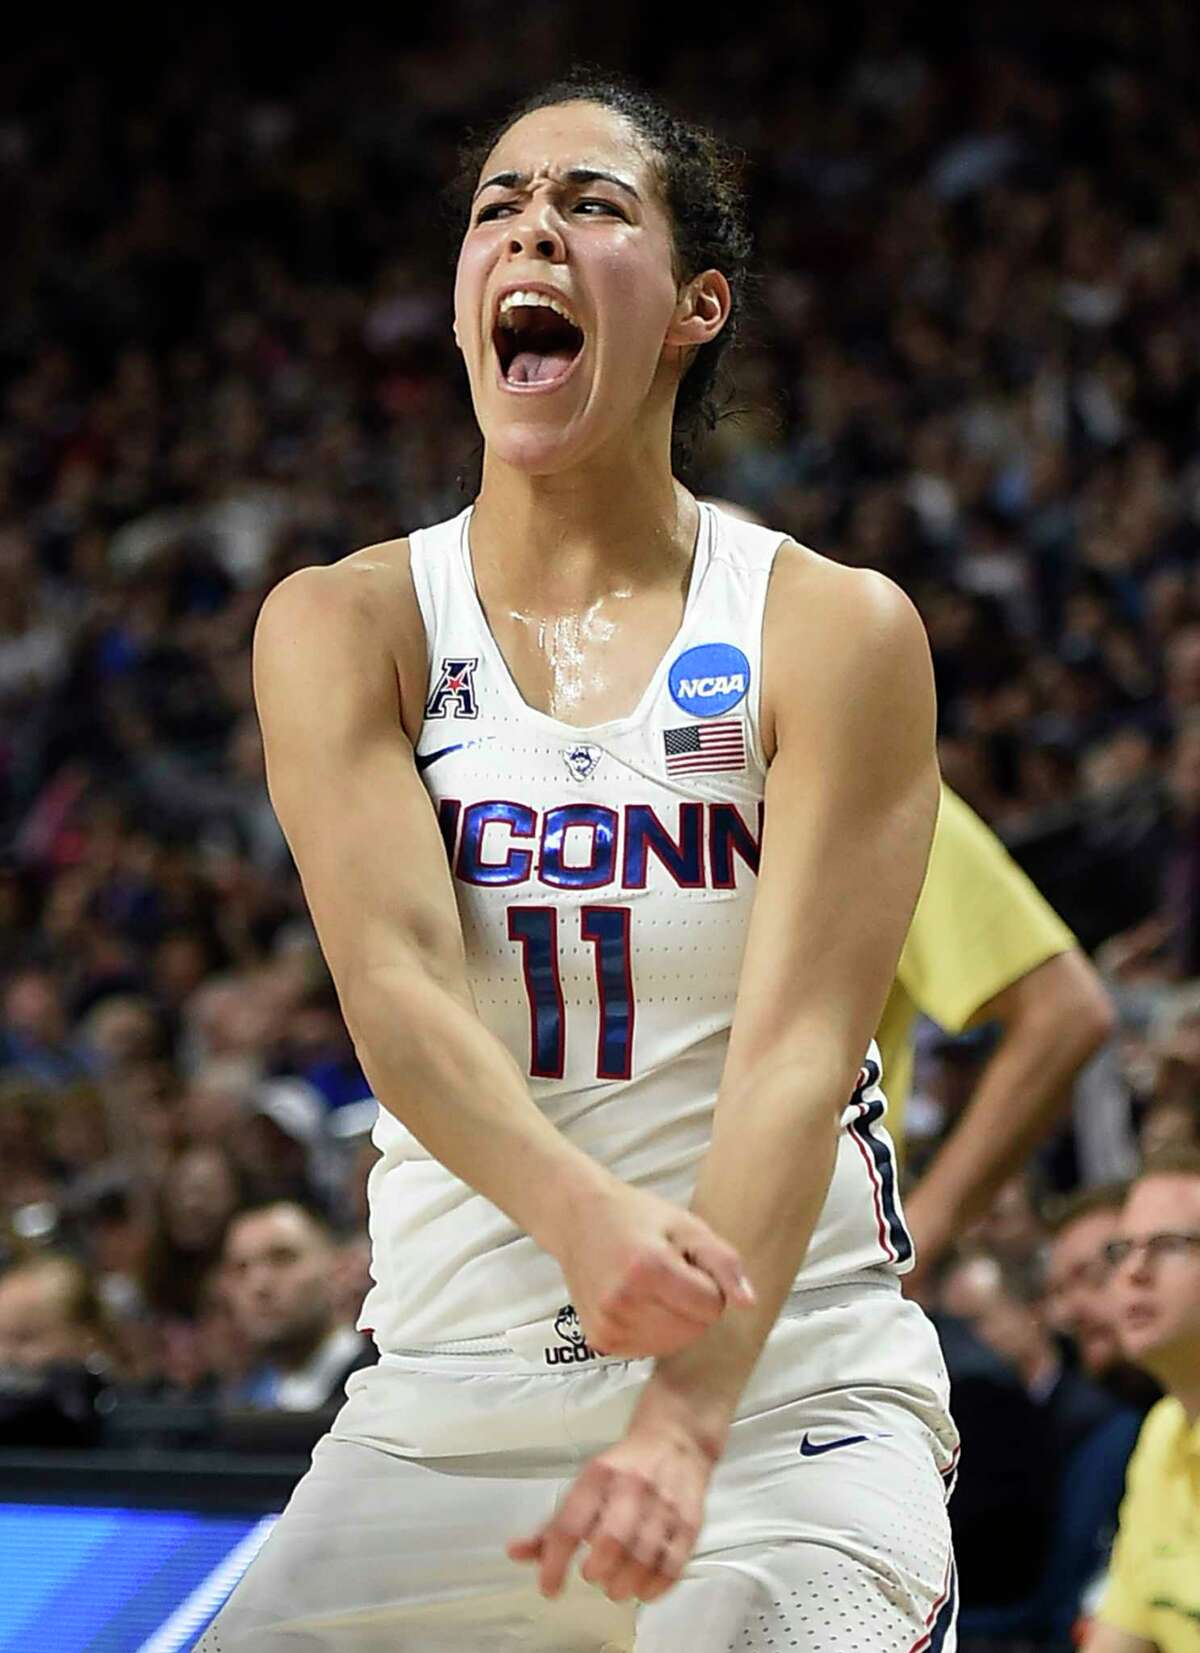 Connecticut's Kia Nurse reacts after hitting a 3-point basket during the first half of a regional final game against Oregon in the NCAA women's college basketball tournament, Monday, March 27, 2017, in Bridgeport, Conn. (AP Photo/Jessica Hill) ORG XMIT: CTJH101